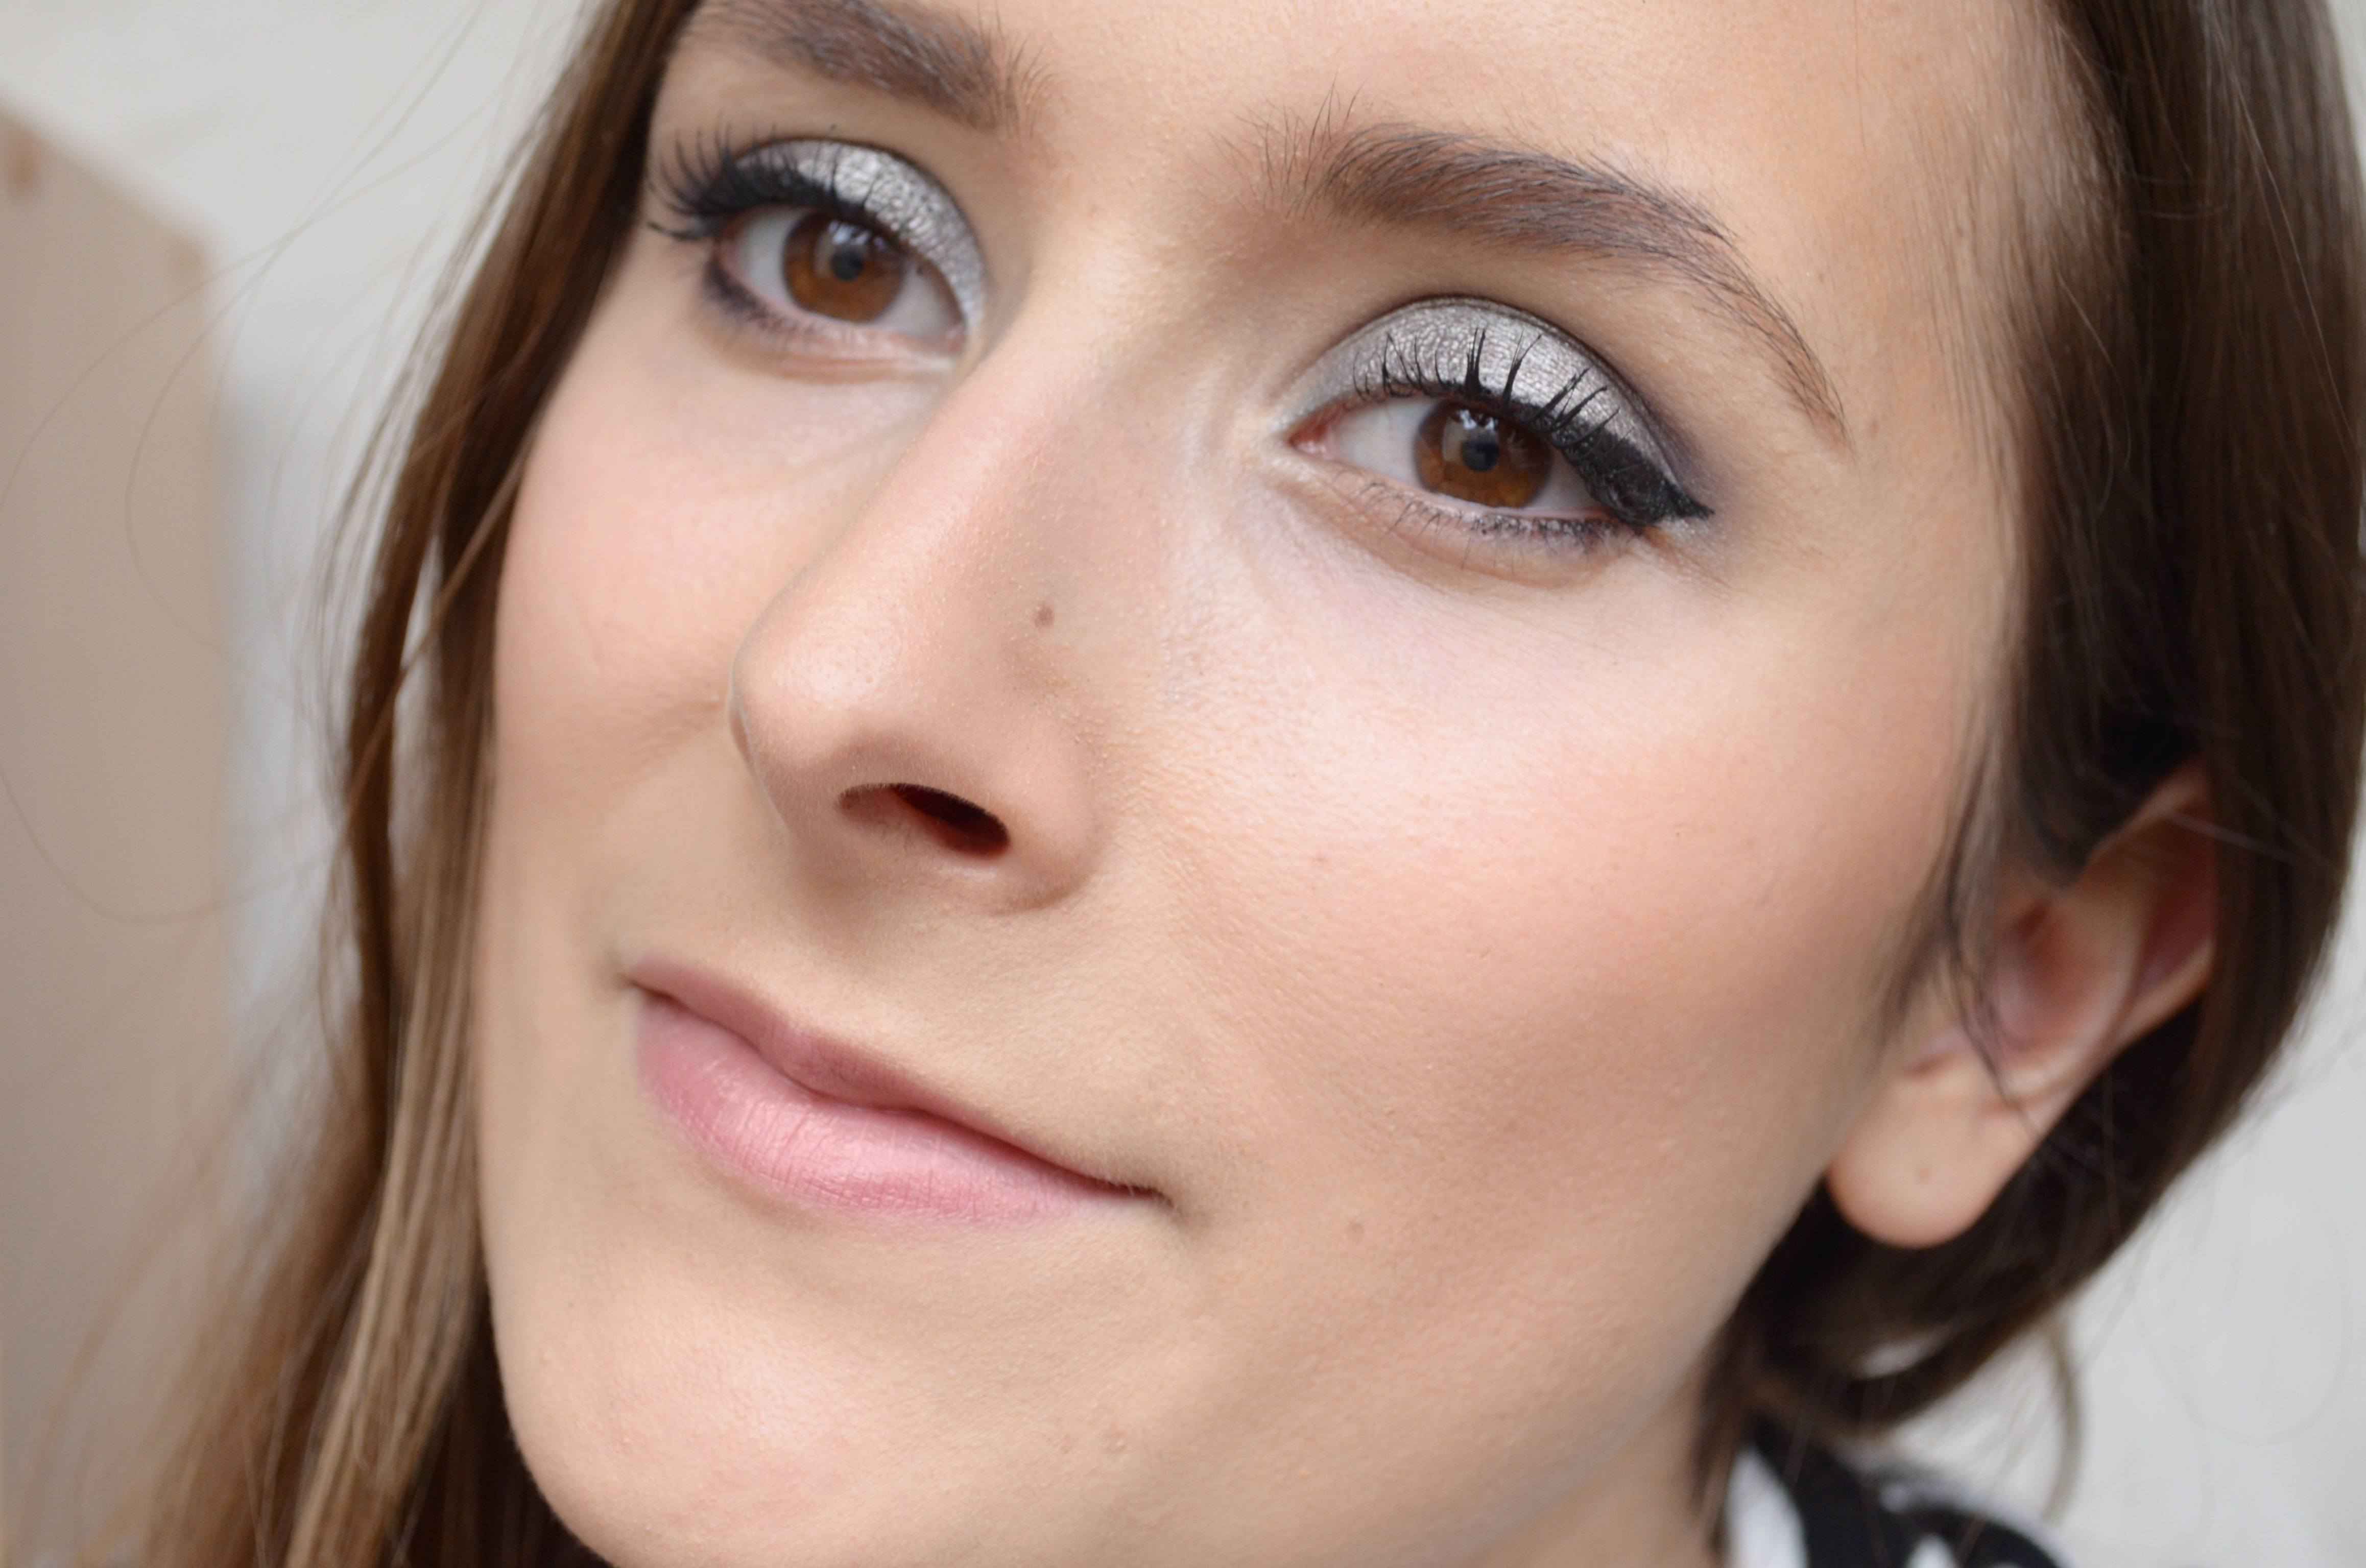 Maquillage gris anthracite avec ma palette homemade - Maquillage yeux gris ...